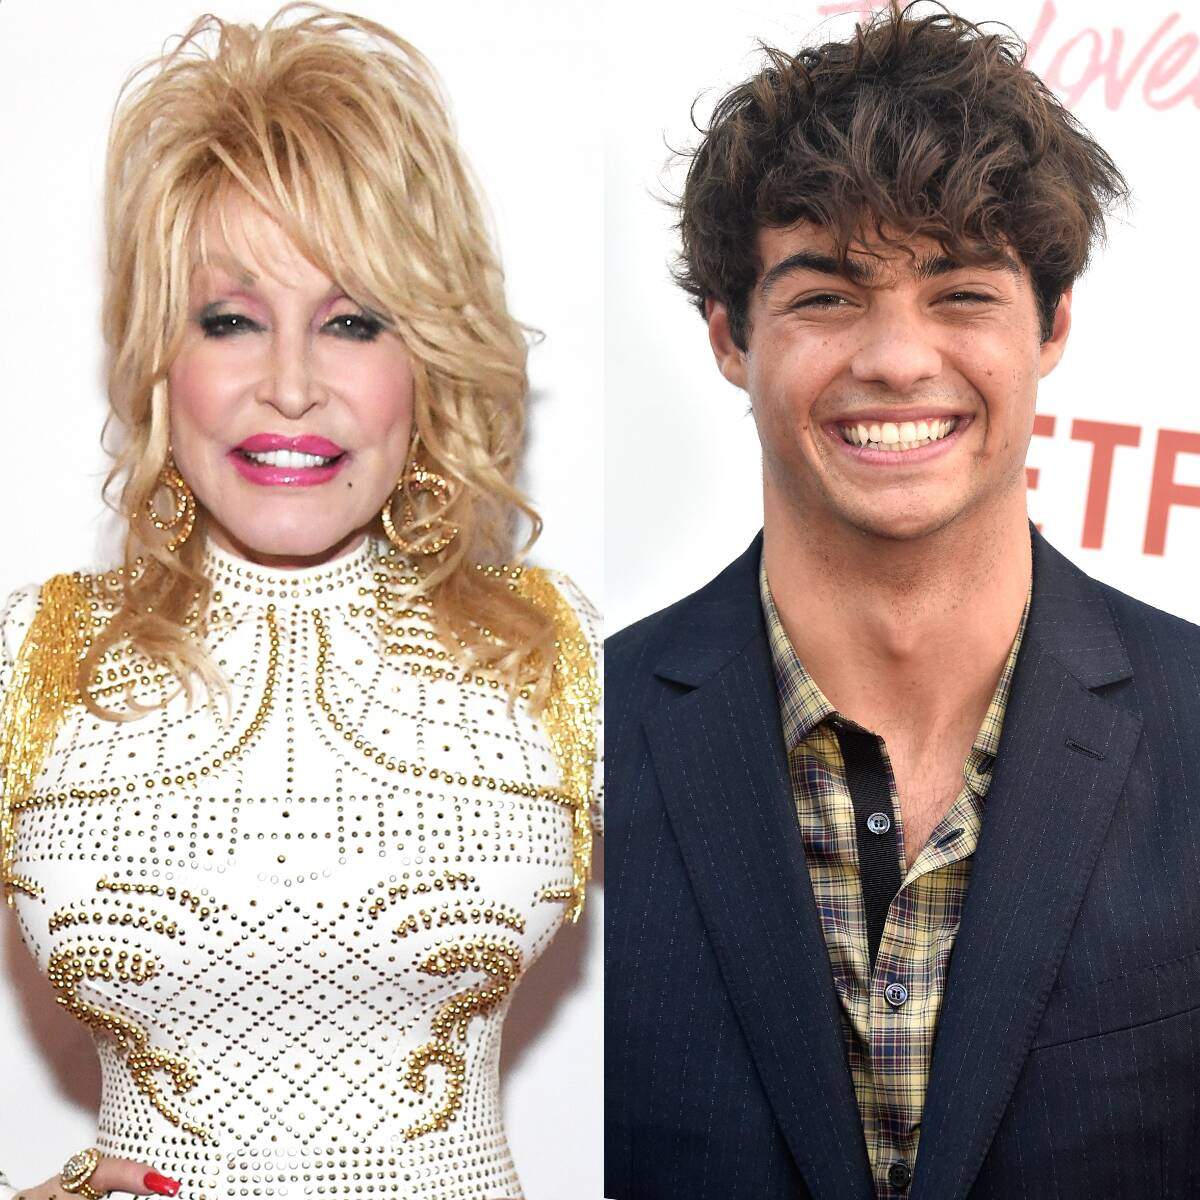 Watch Dolly Parton and Noah Centineo Play True Confessions on The Tonight Show